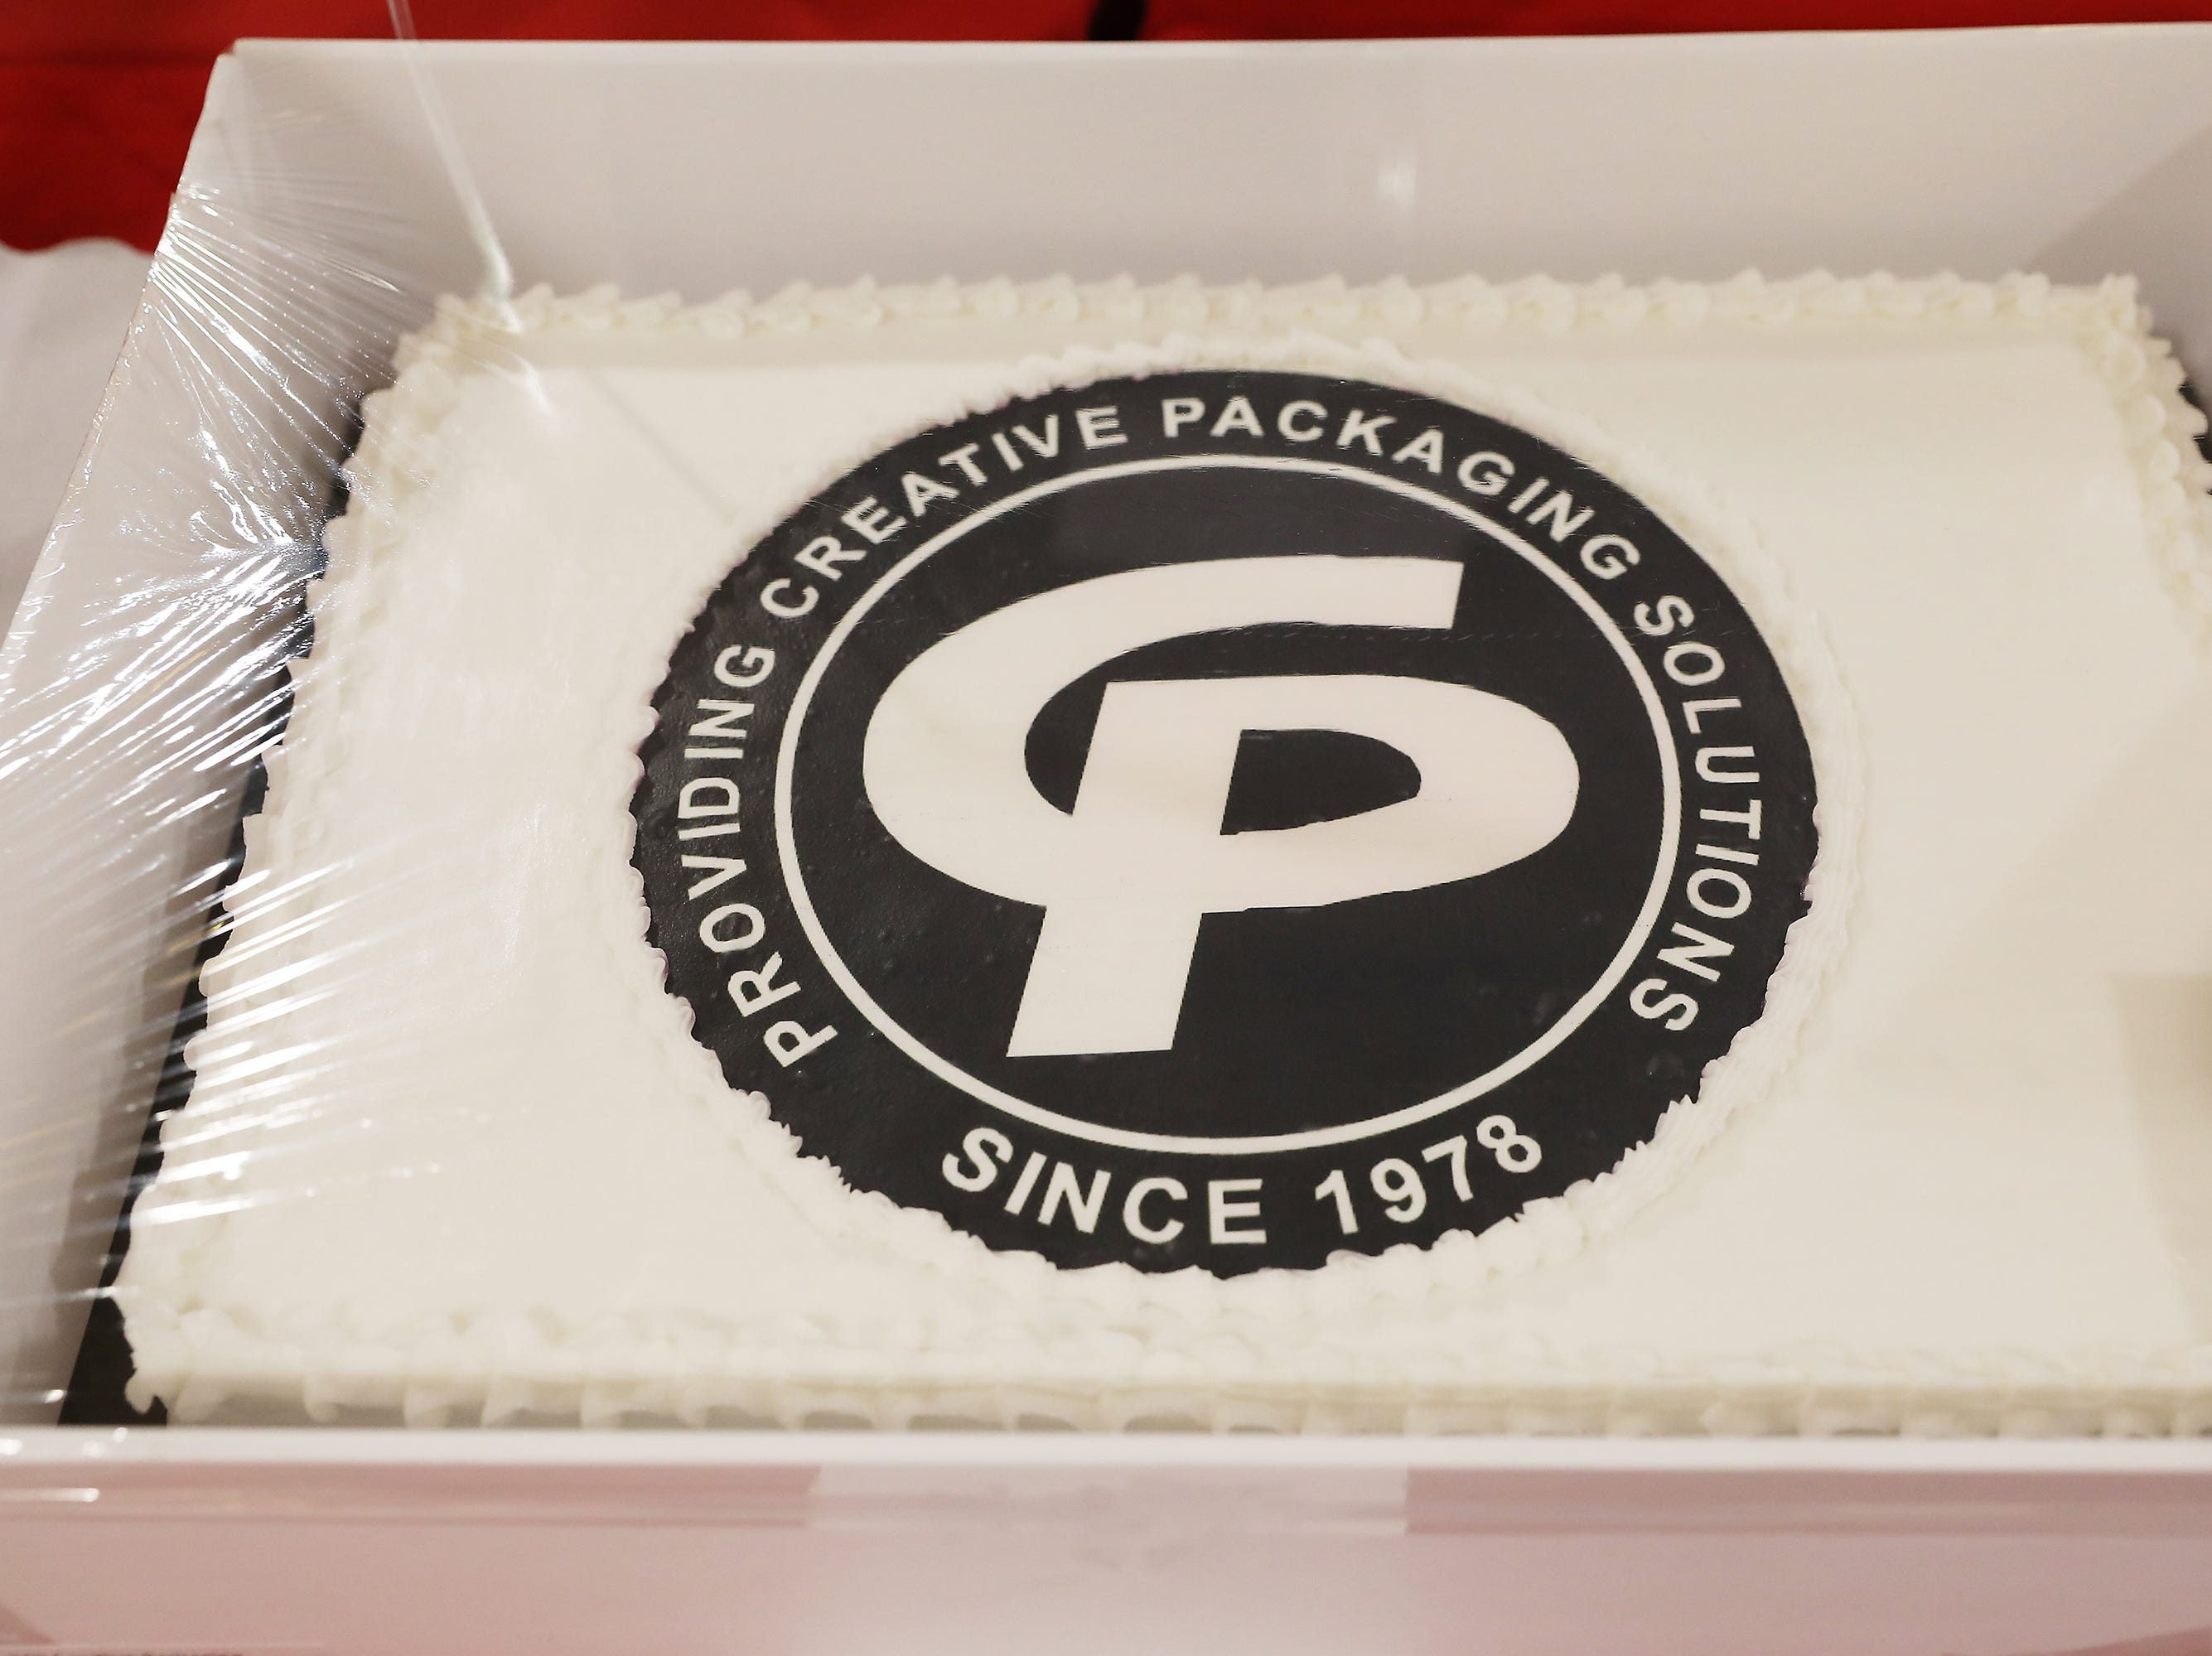 2:45 P.M. Friday cake 342 Creative Packaging - Flag pole with installation; $400